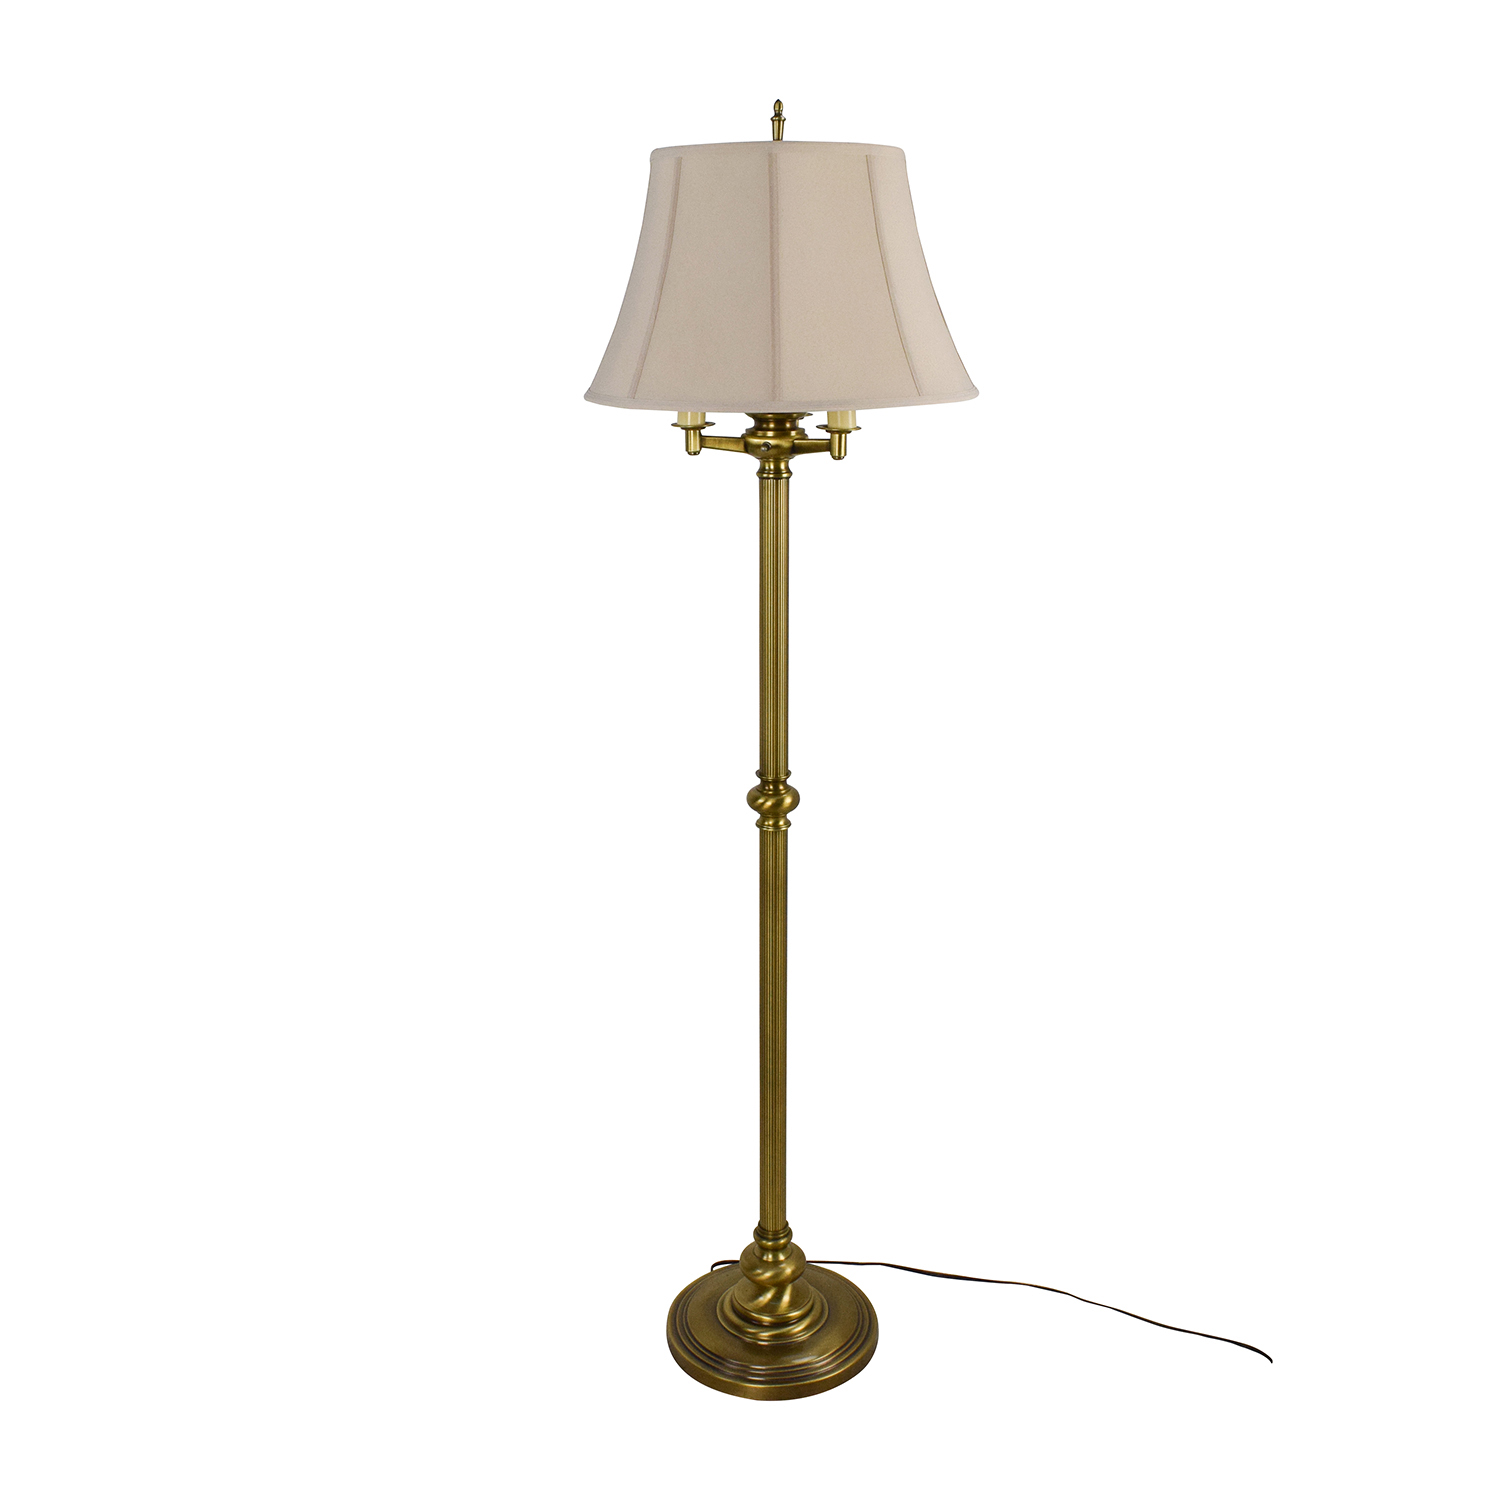 Good Gracious Home Gracious Home House Of Troy Newport Antique Brass Lamp  Discount ...